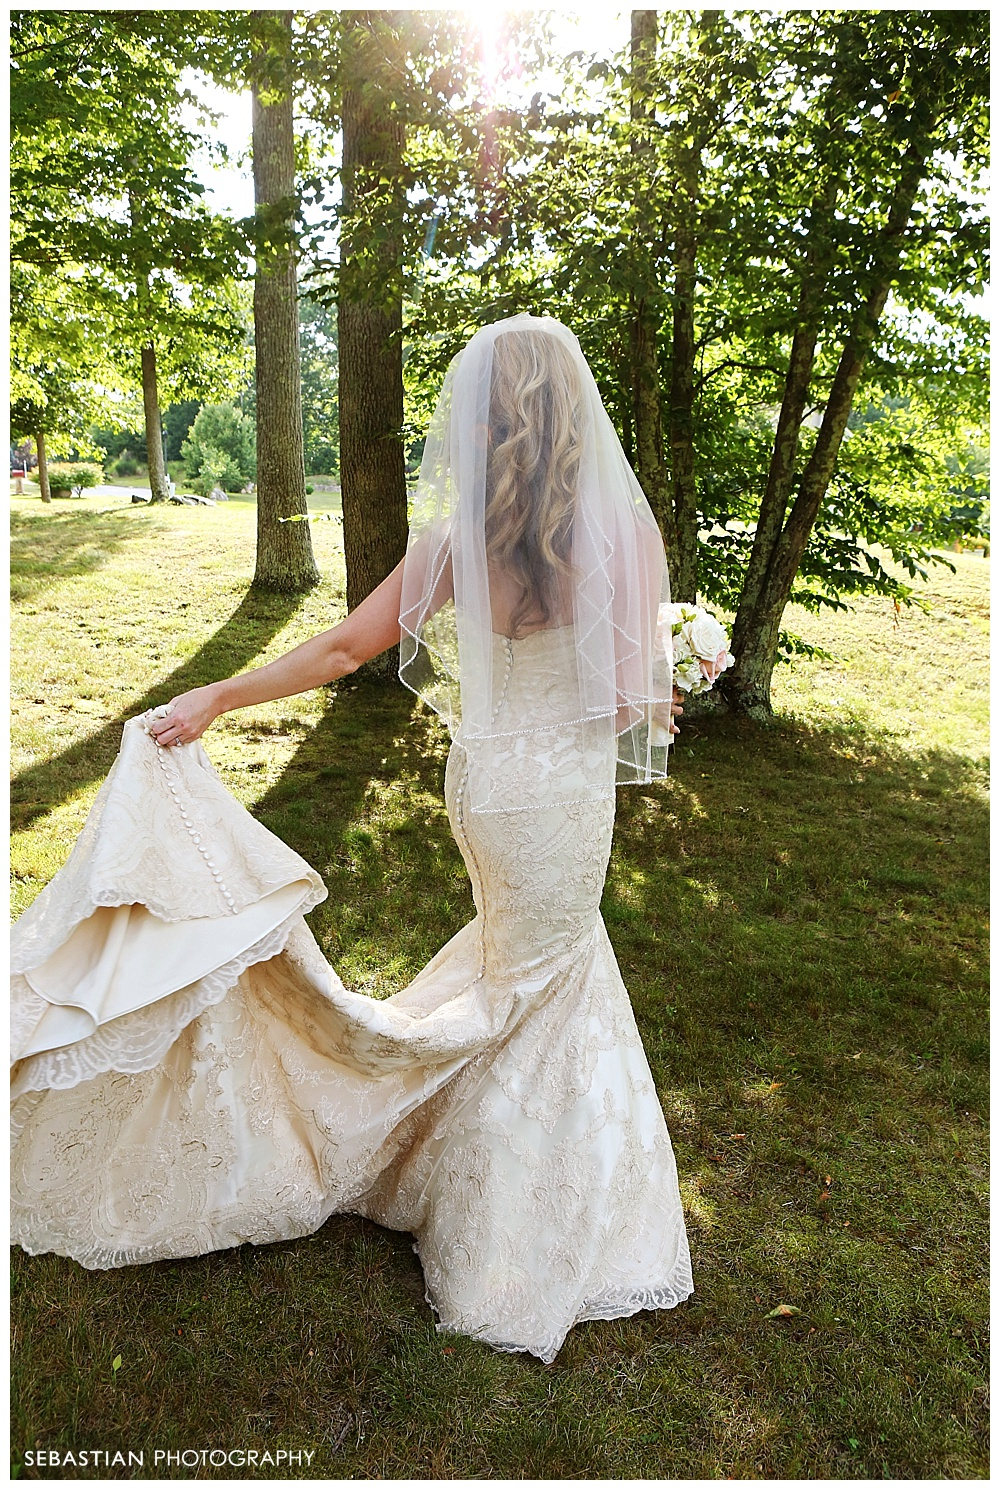 CT Wedding Photographer_Sebastian Photography_Lake of Isles_Outdoor Wedding_Murray_Bransford1011.jpg